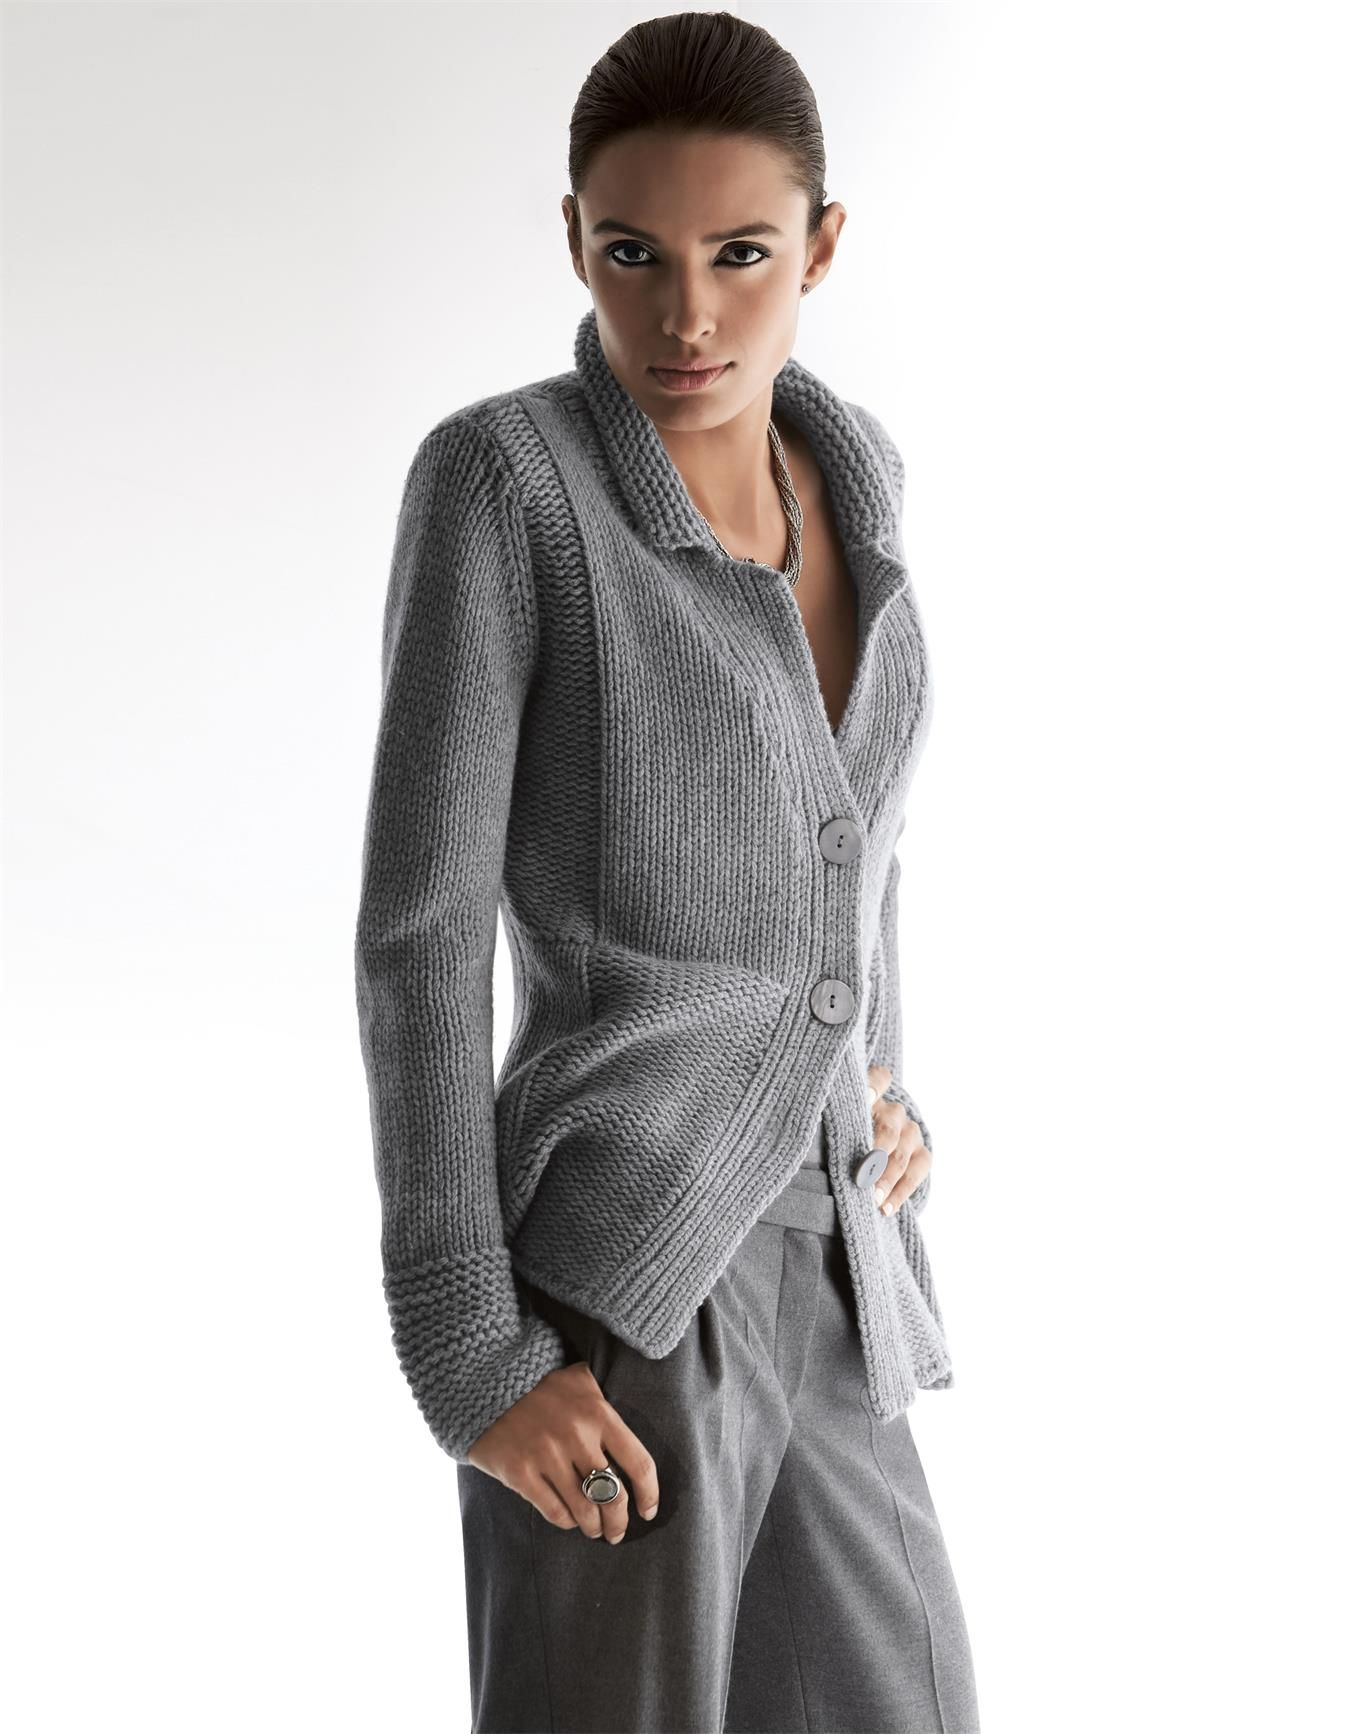 Pure cashmere with mother-of-pearl buttons